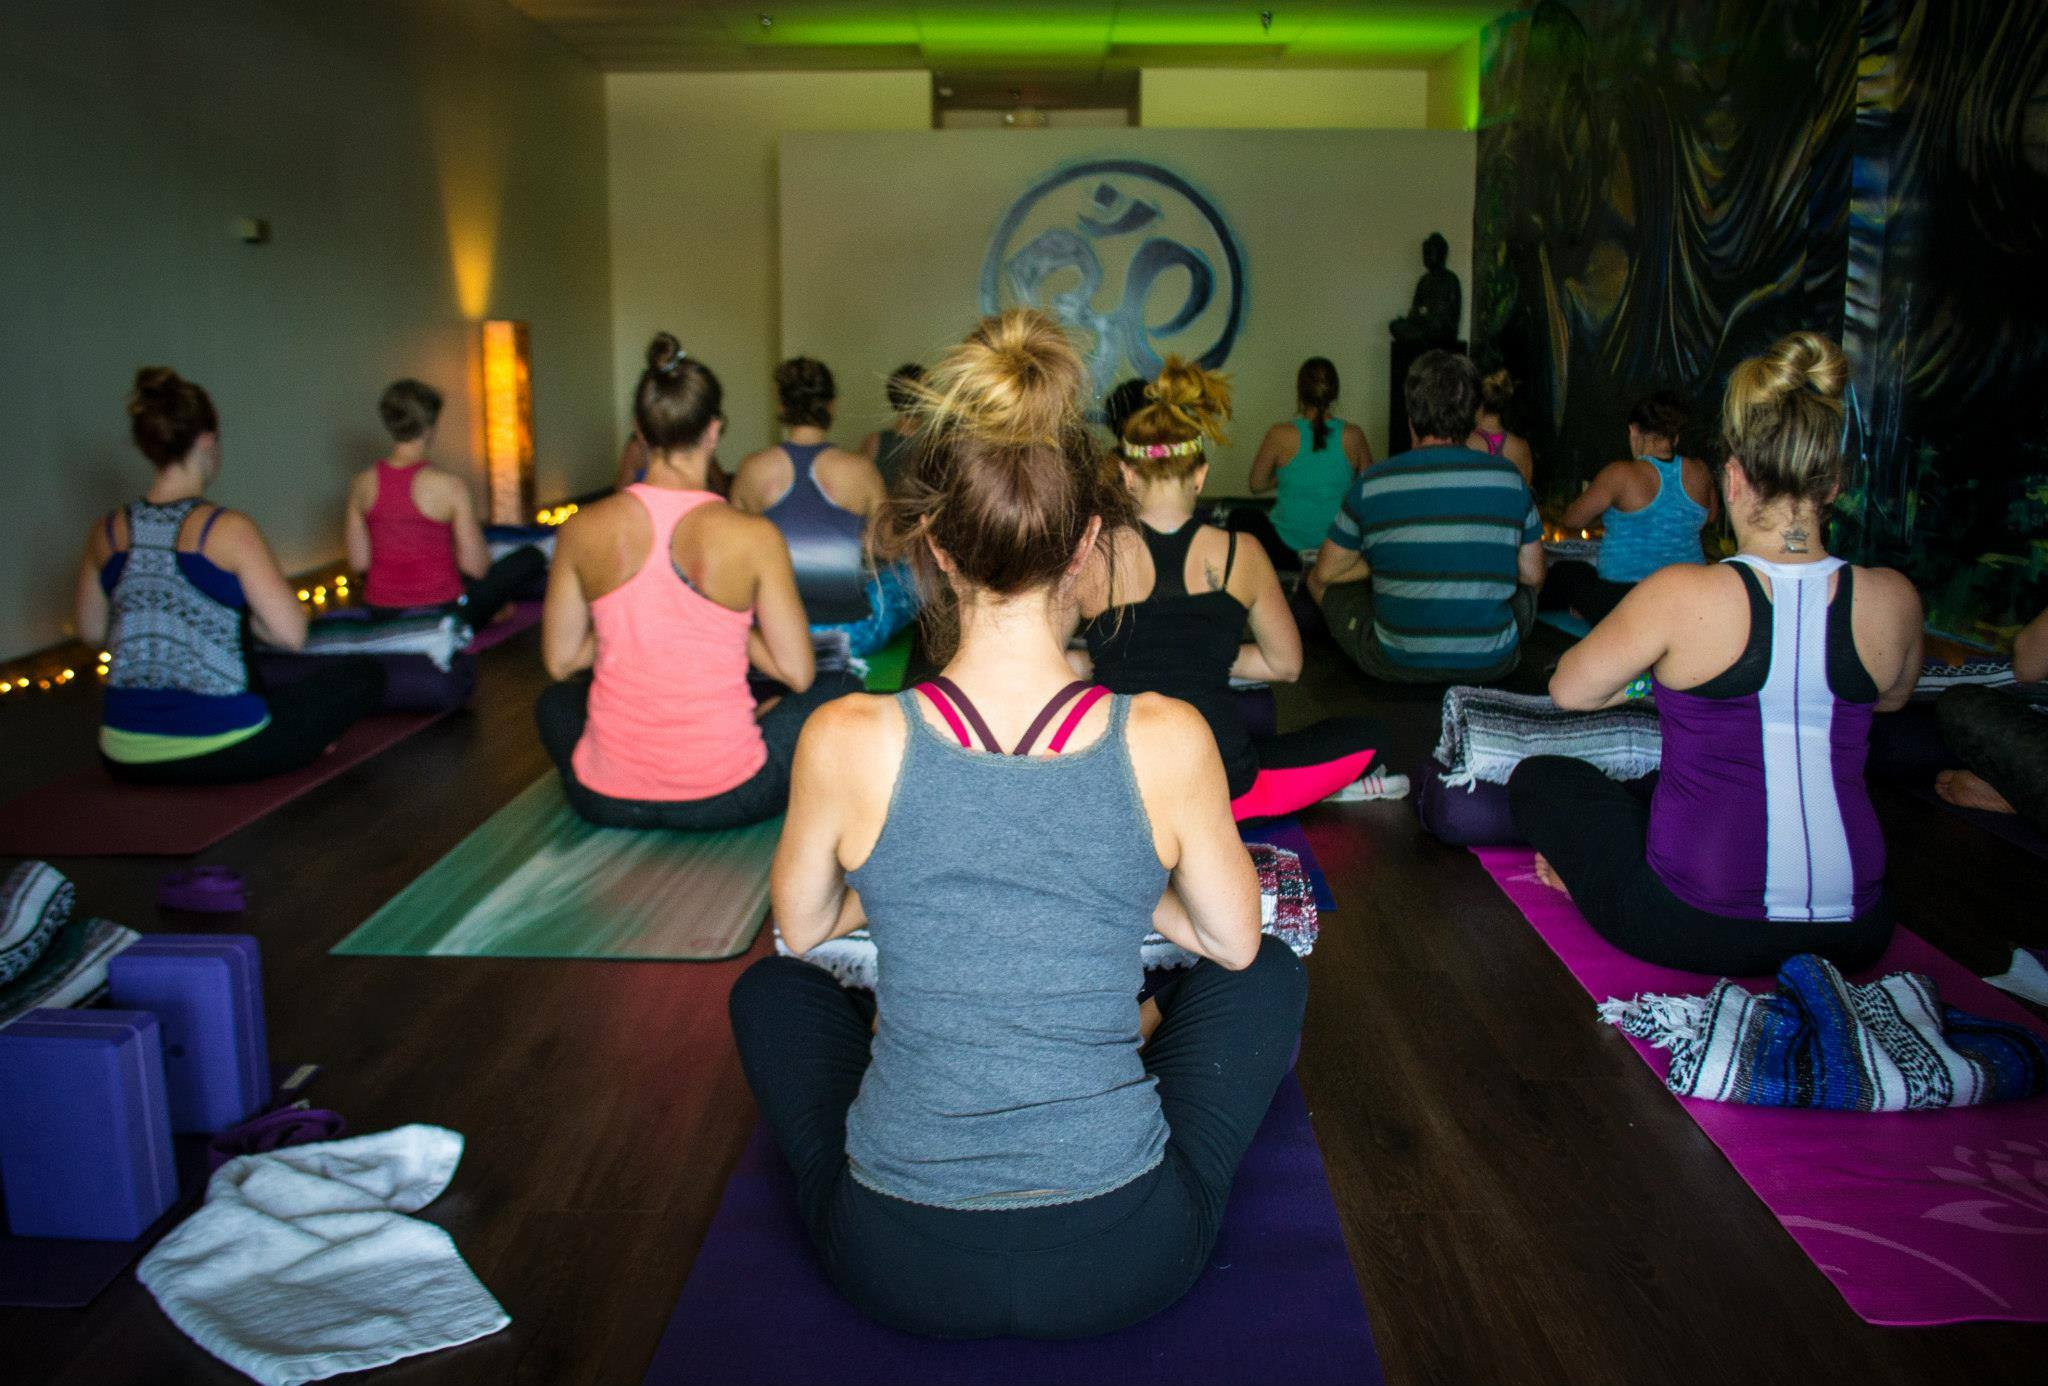 $150 for Three Months of Unlimited Yoga!